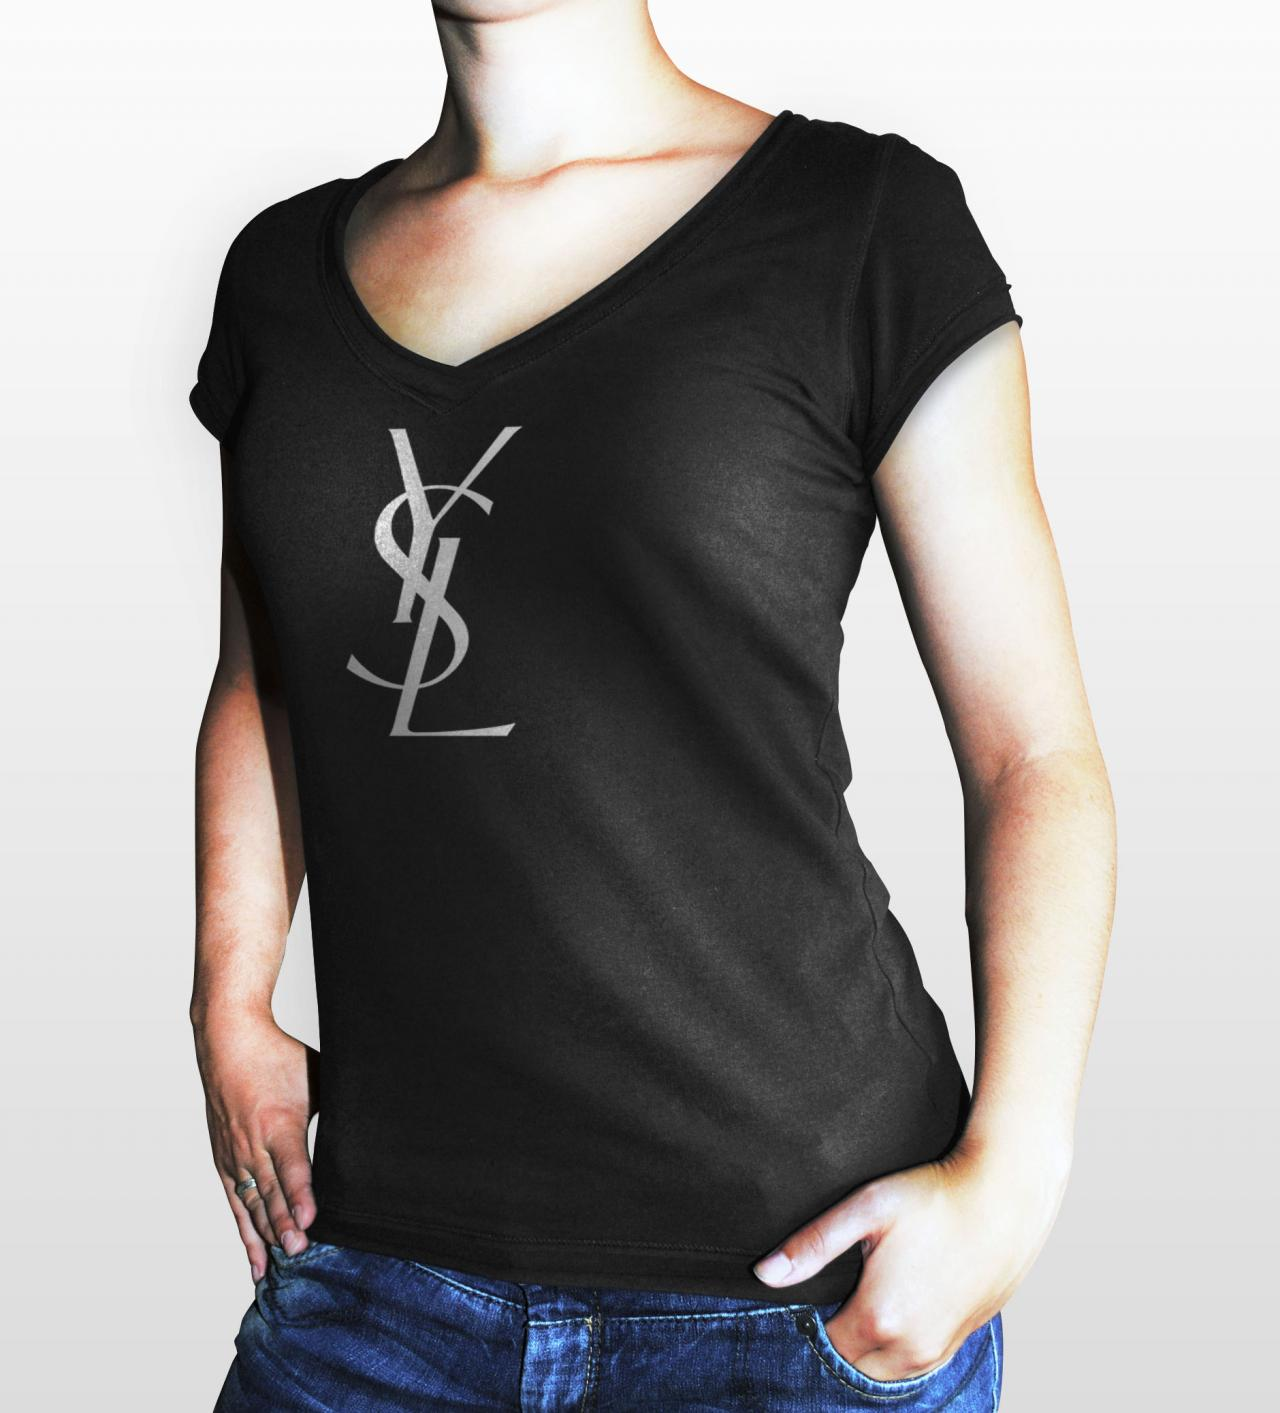 Ysl yves saint laurent paris women black gildan t shirt on for Saint laurent paris t shirt